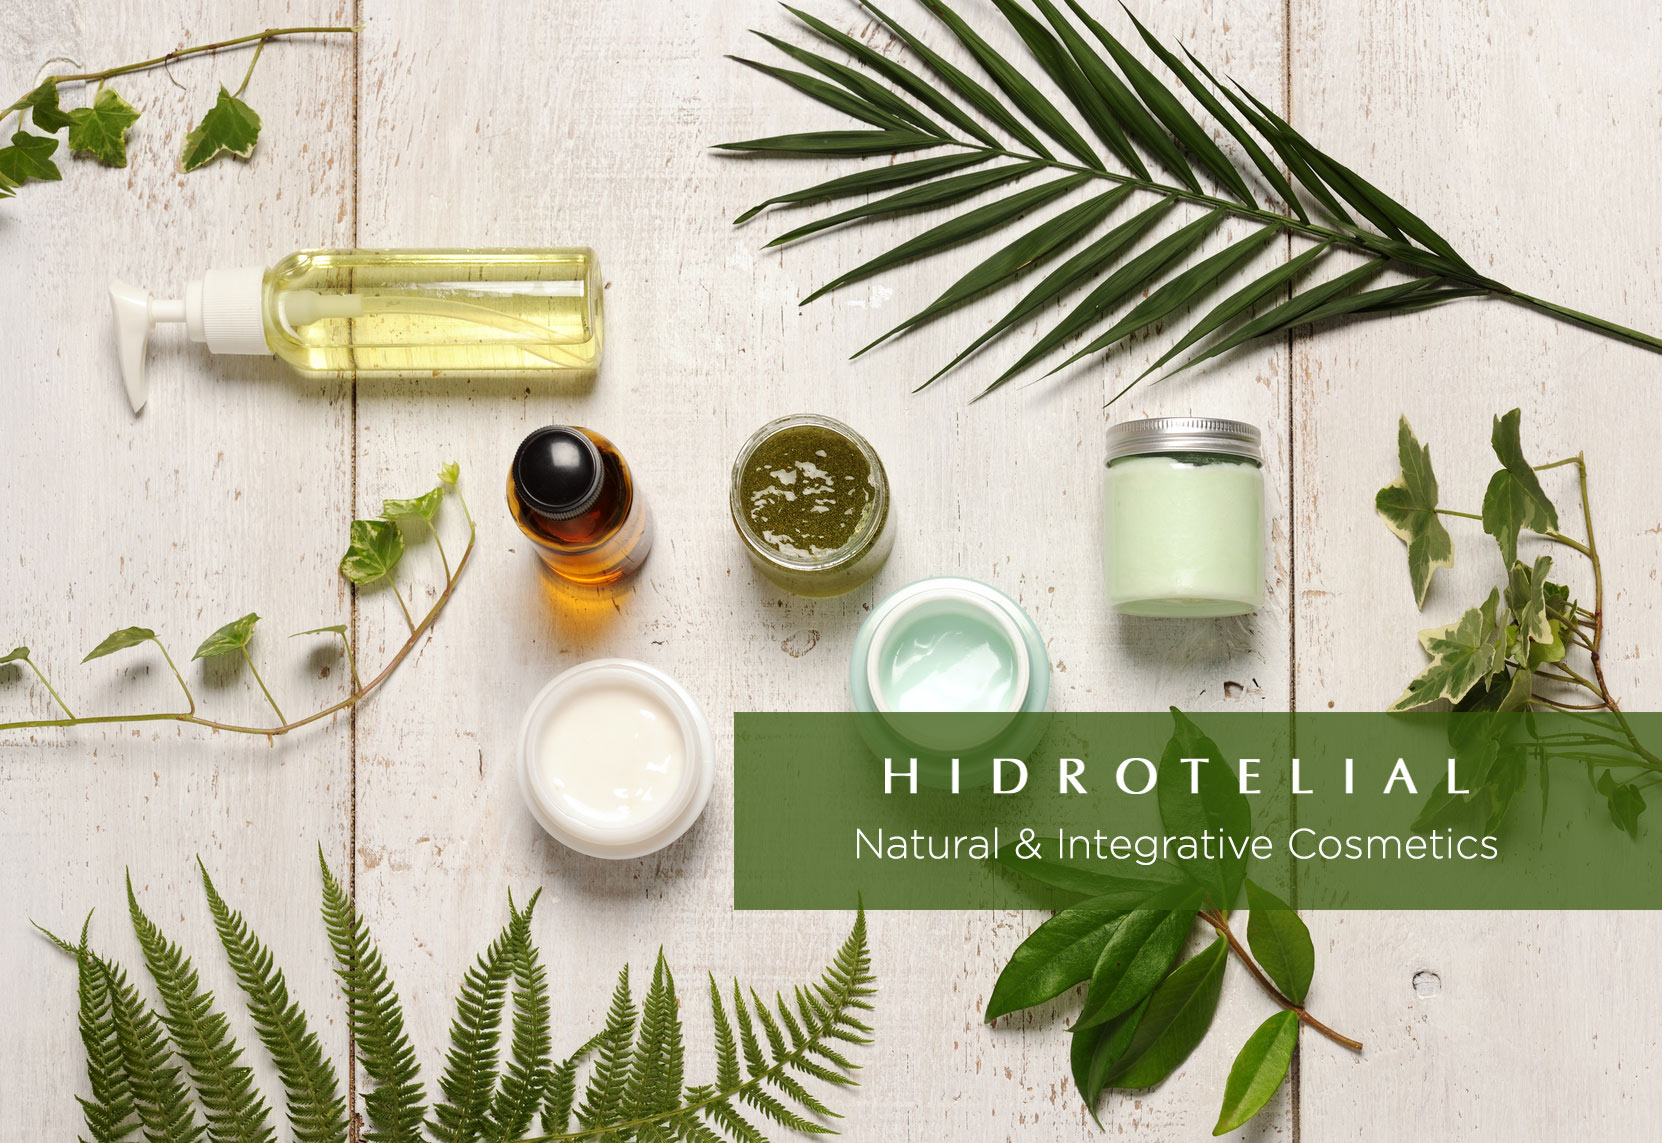 Hidrotelial Natural & Integrative Cosmetics